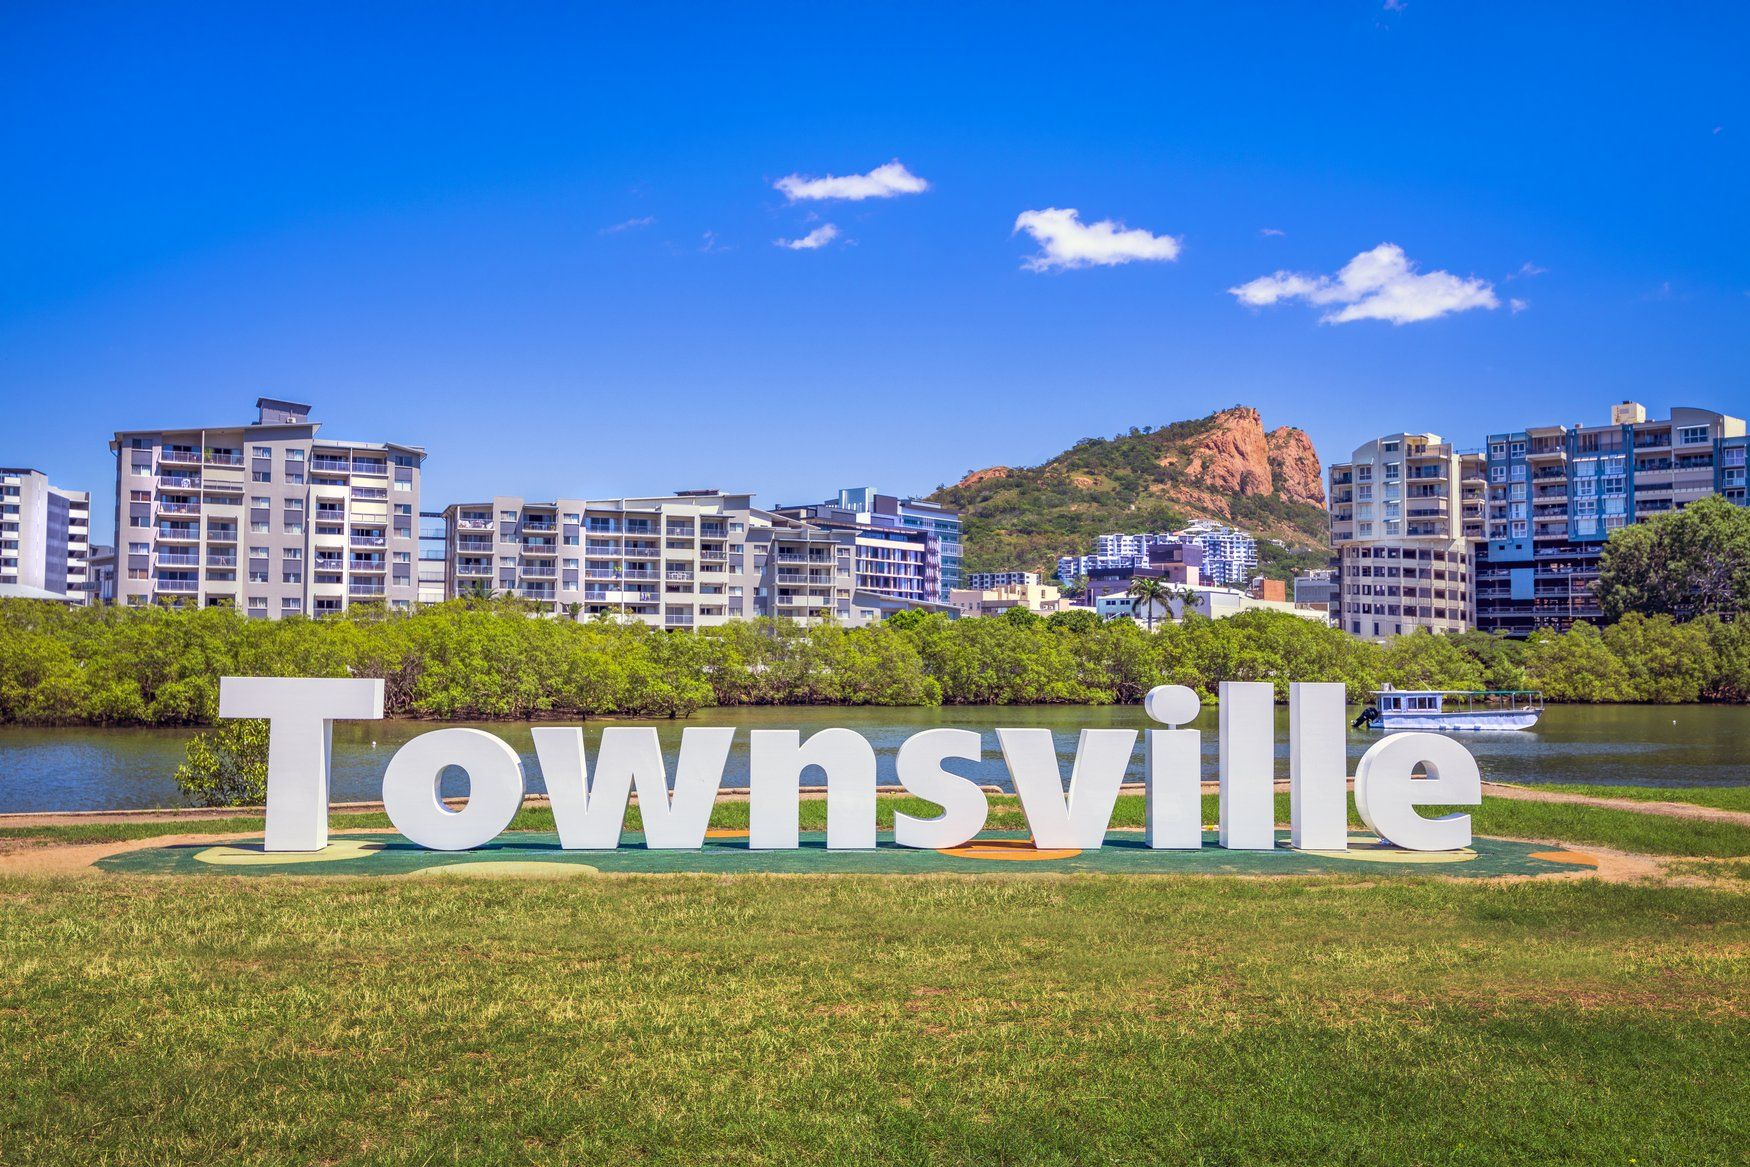 Townsville – Northern capital city